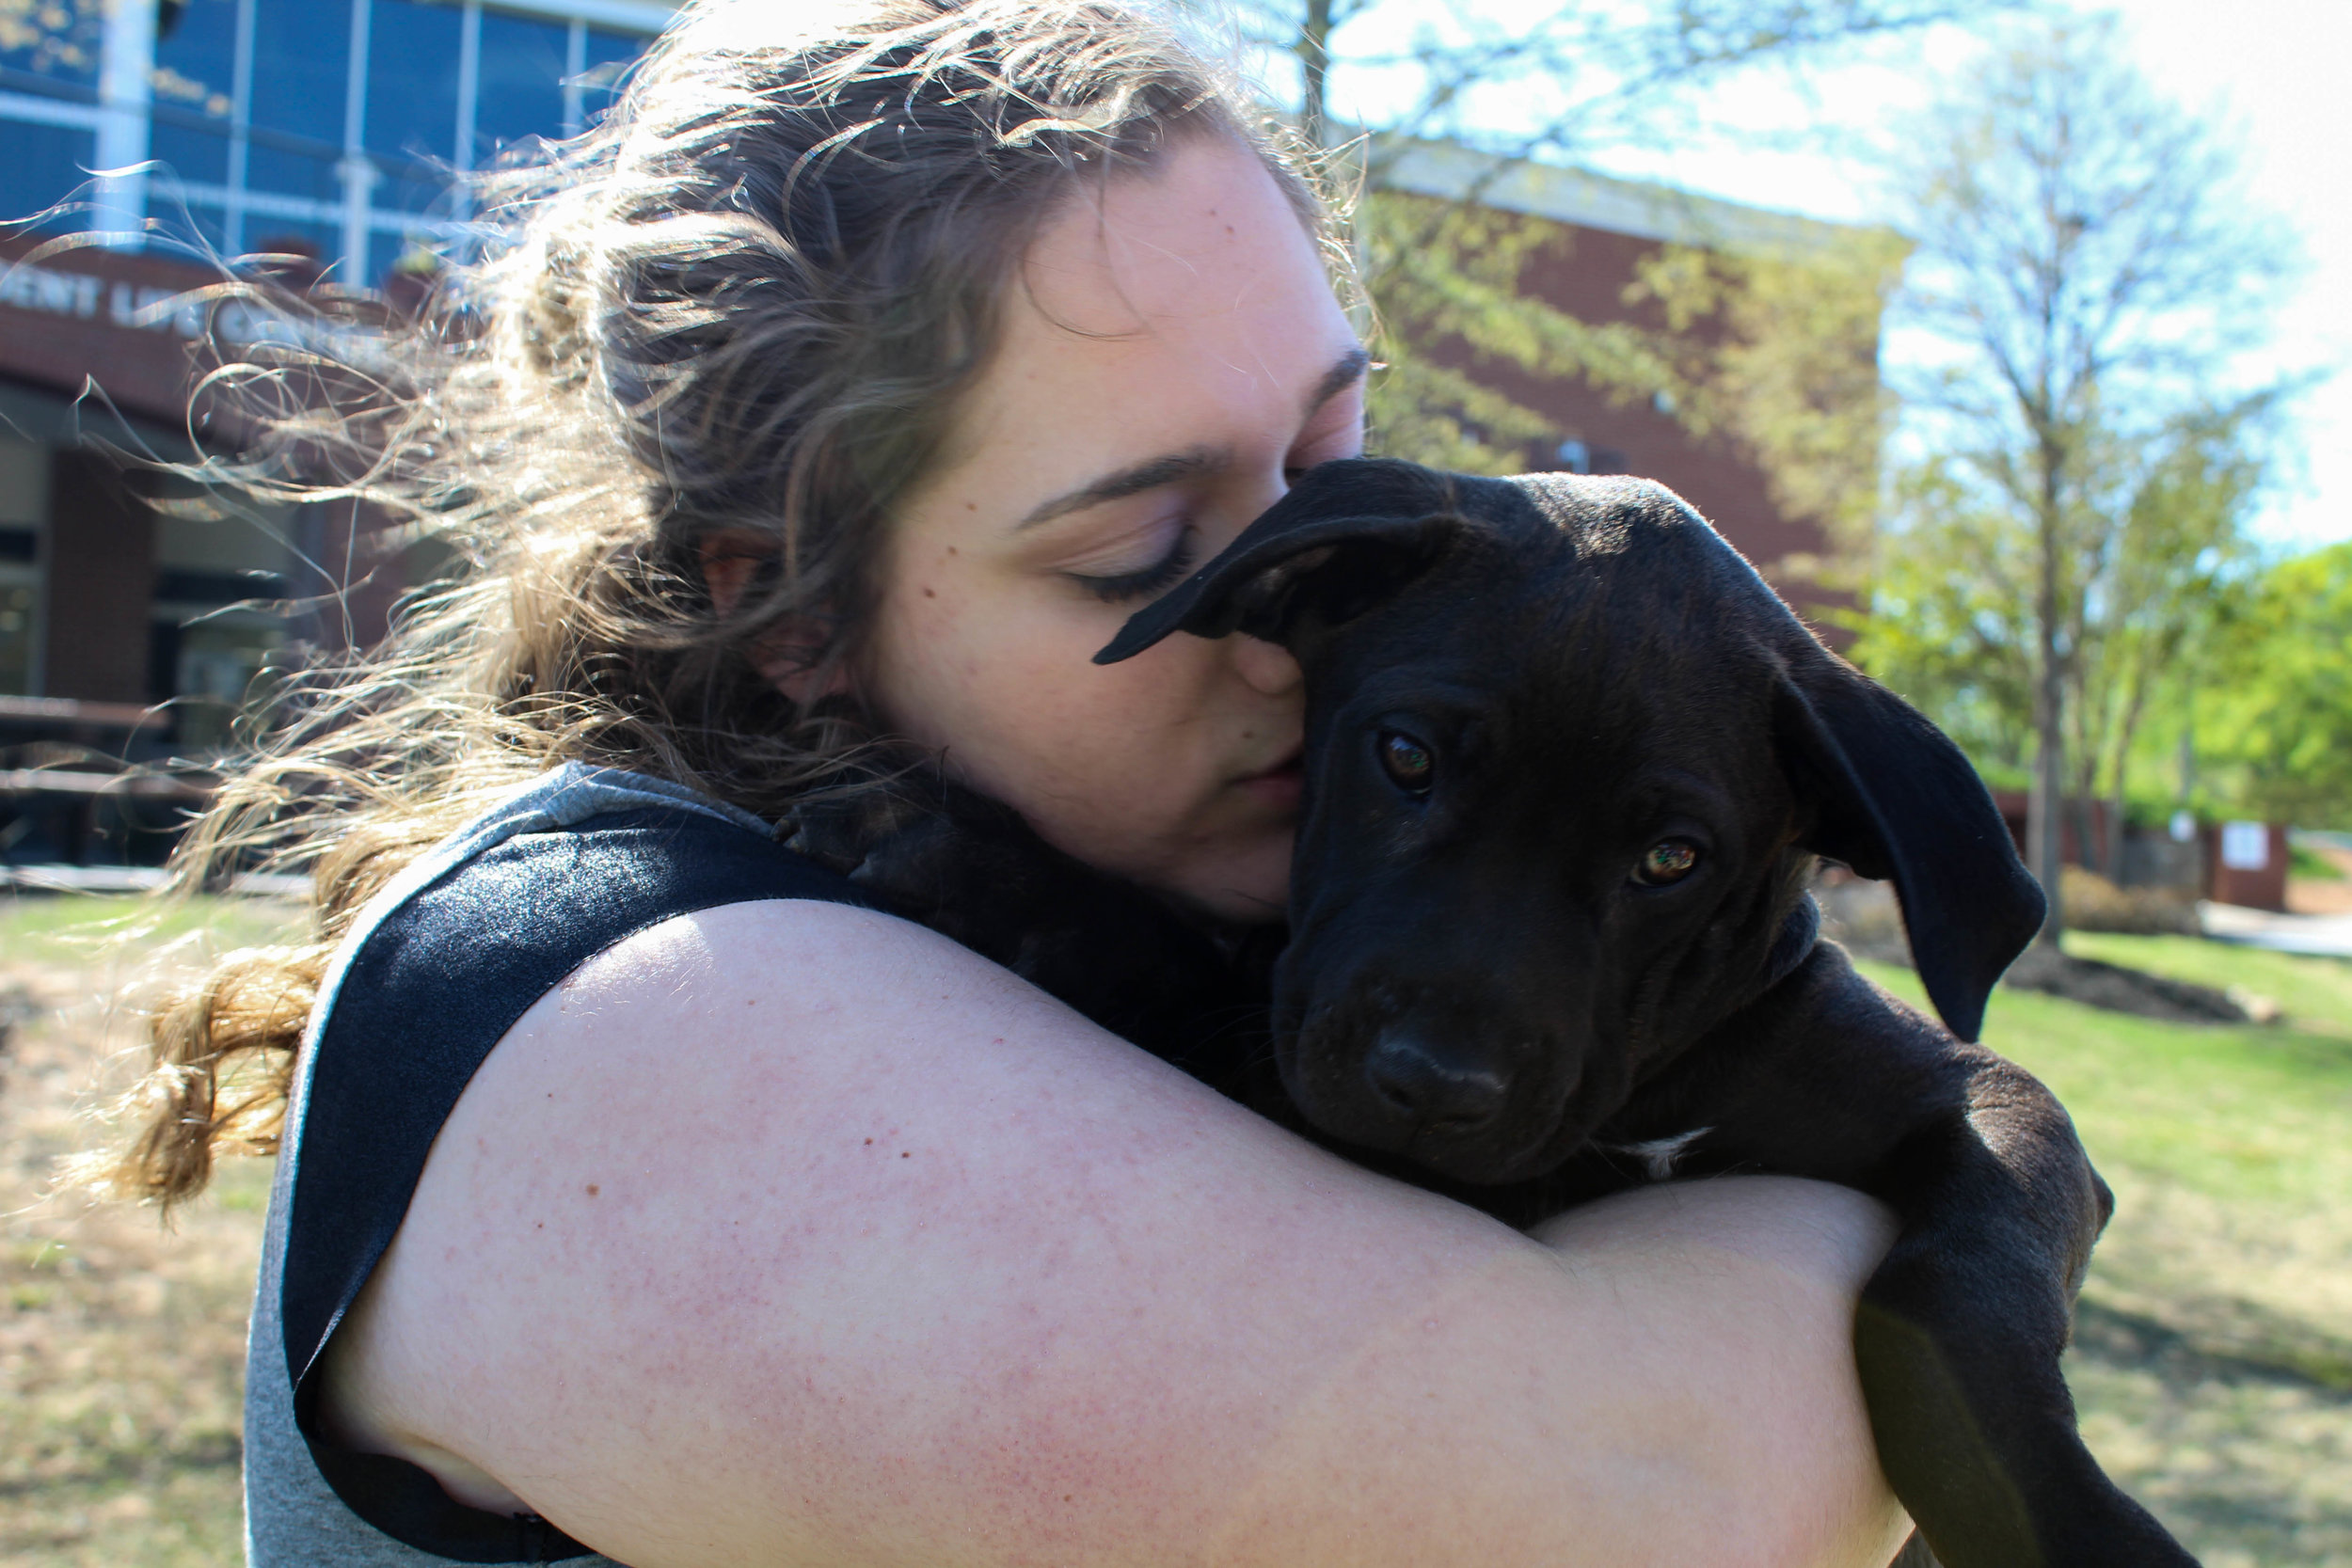 Nicole Pollard, an early childhood education major, holds one of the girl puppies.